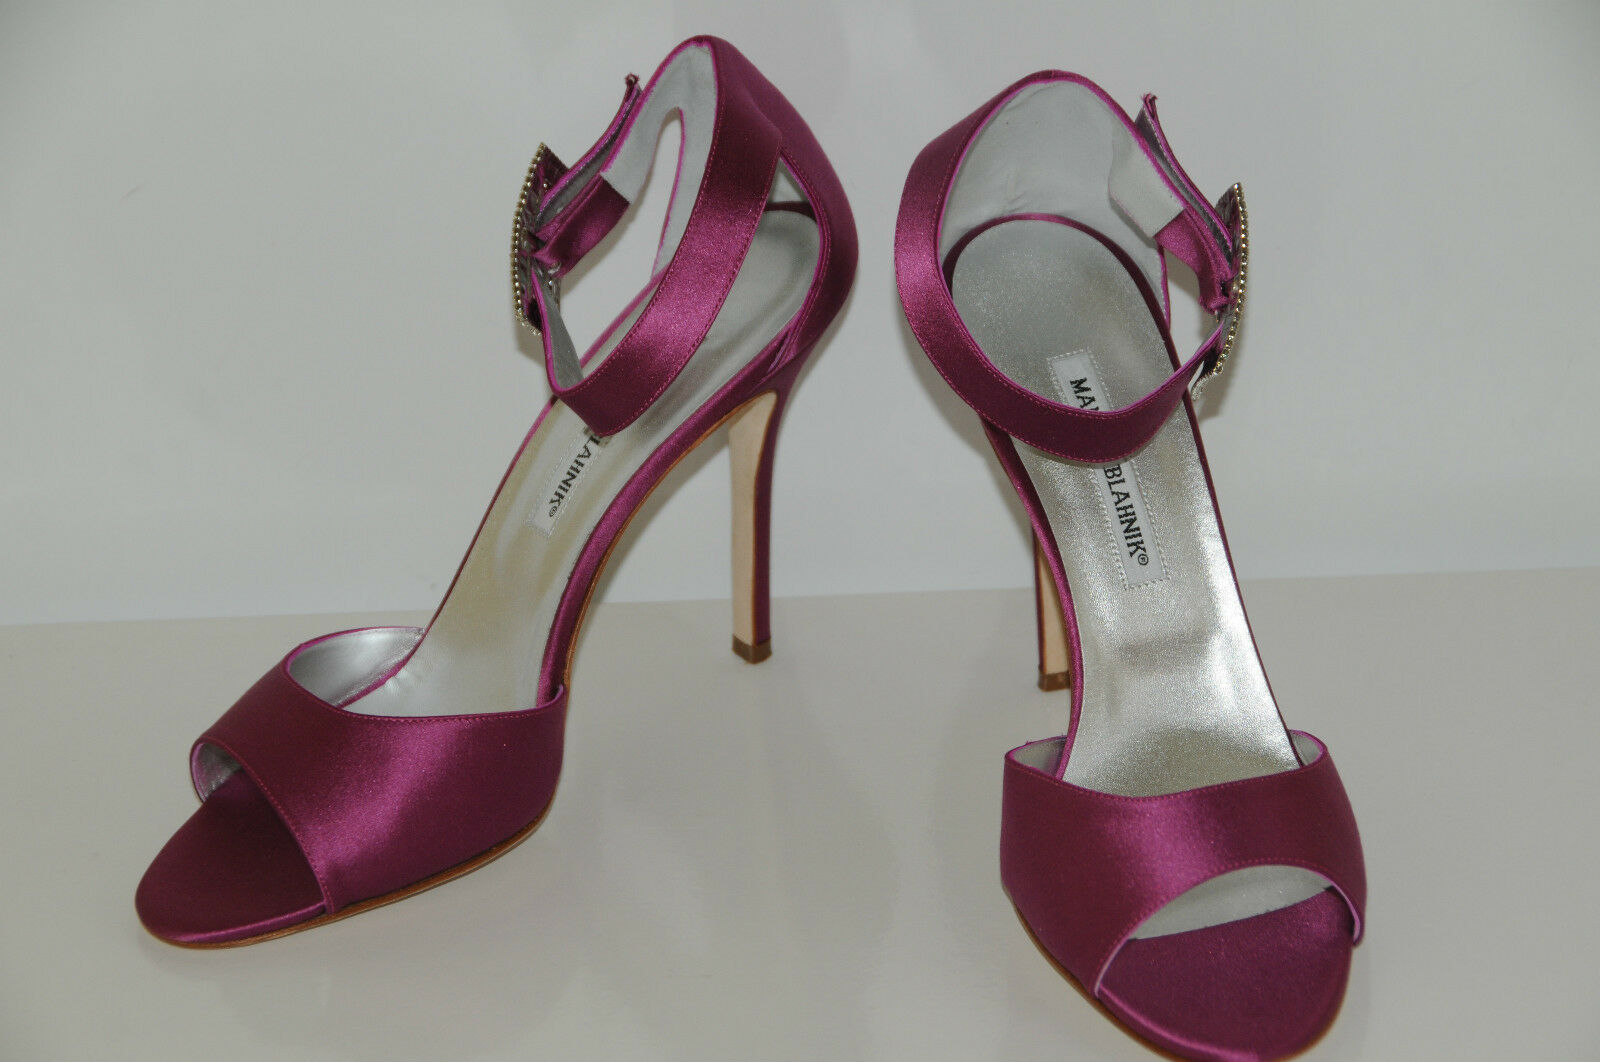 925 NEW MANOLO MANOLO MANOLO BLAHNIK rose Satin DRIBBIN JEWELED CRYSTAL SANDALS chaussures 40.5 10 b202e7